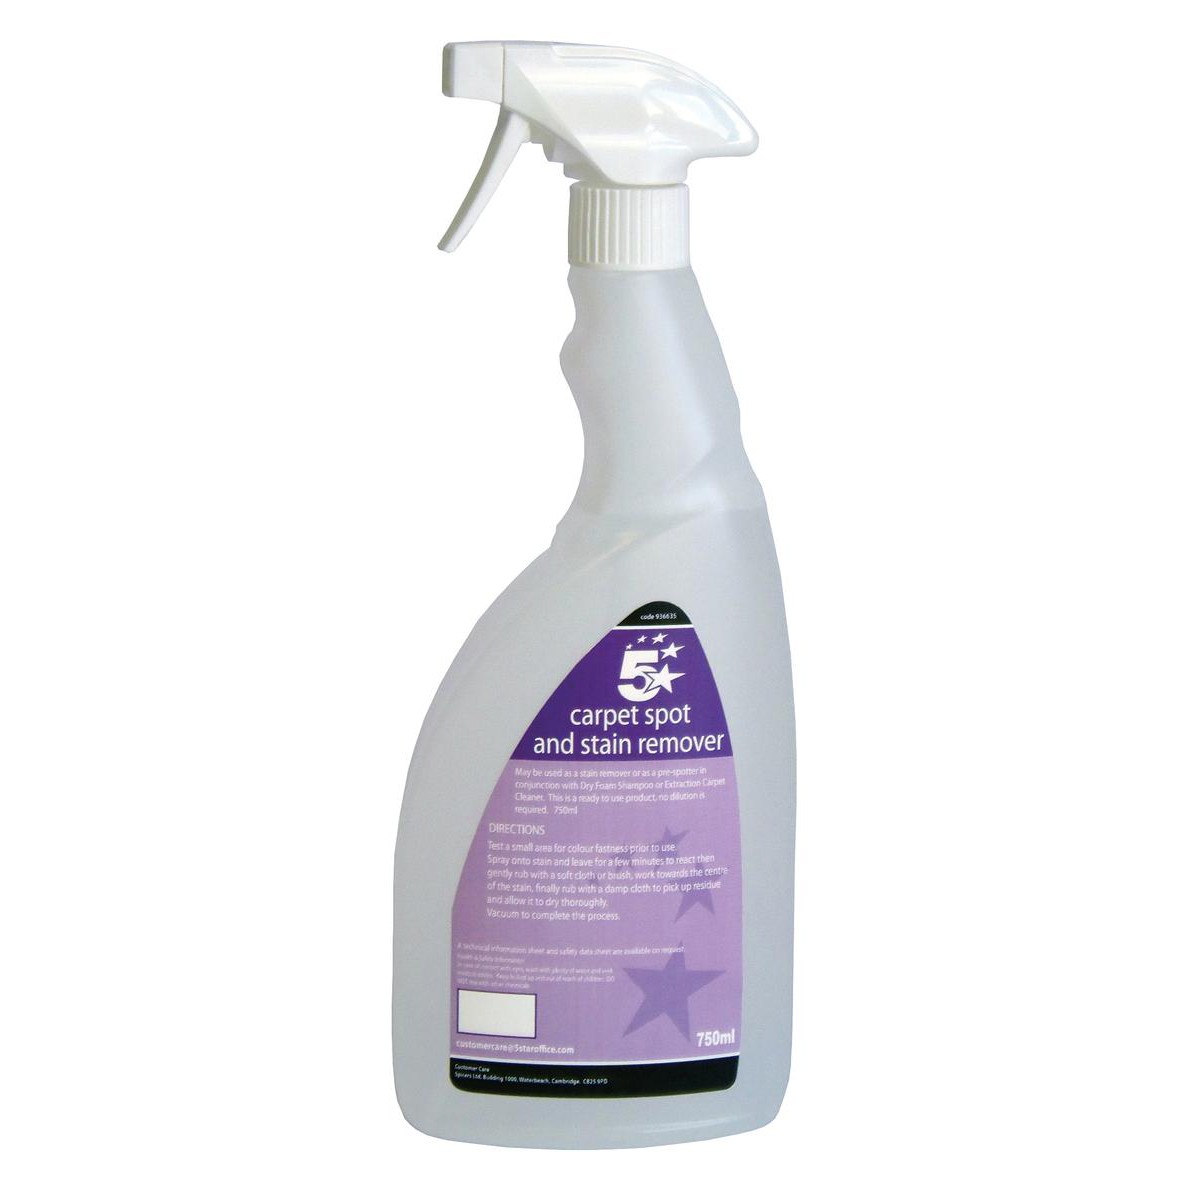 Floor Cleaning 5 Star Facilities Carpet Spot & Stain Remover 750ml